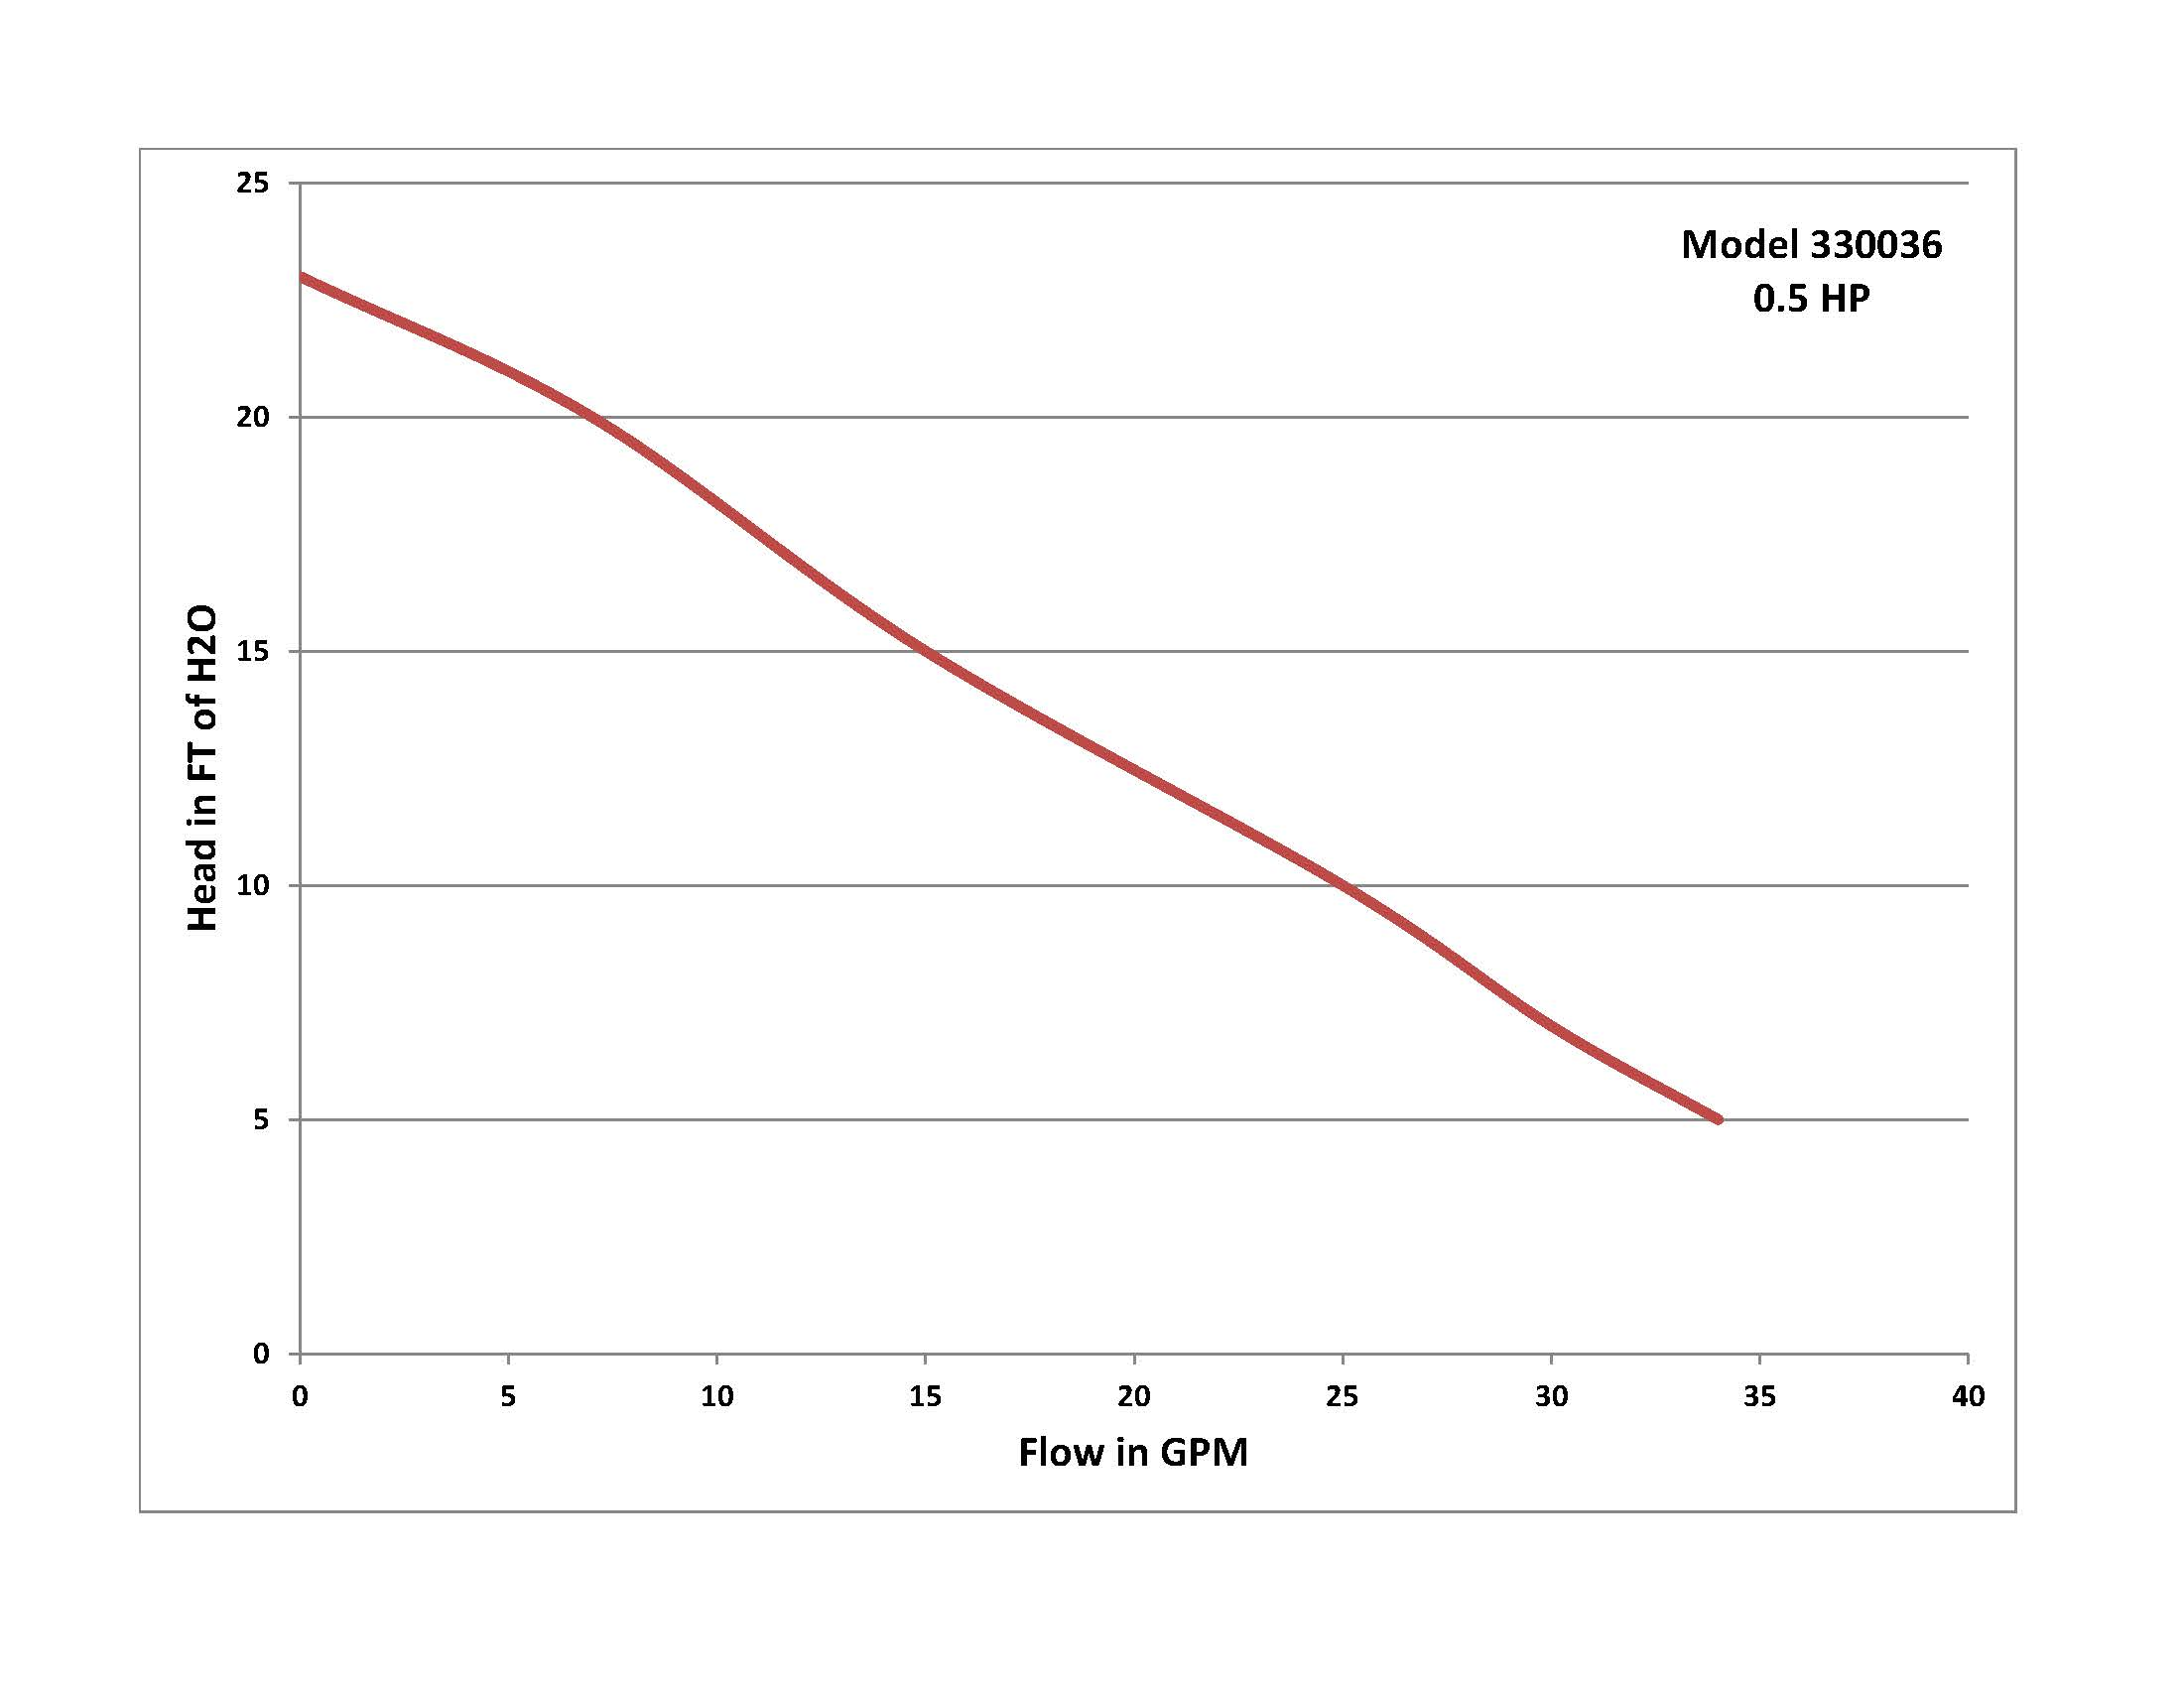 Performance Curve for Model 330036